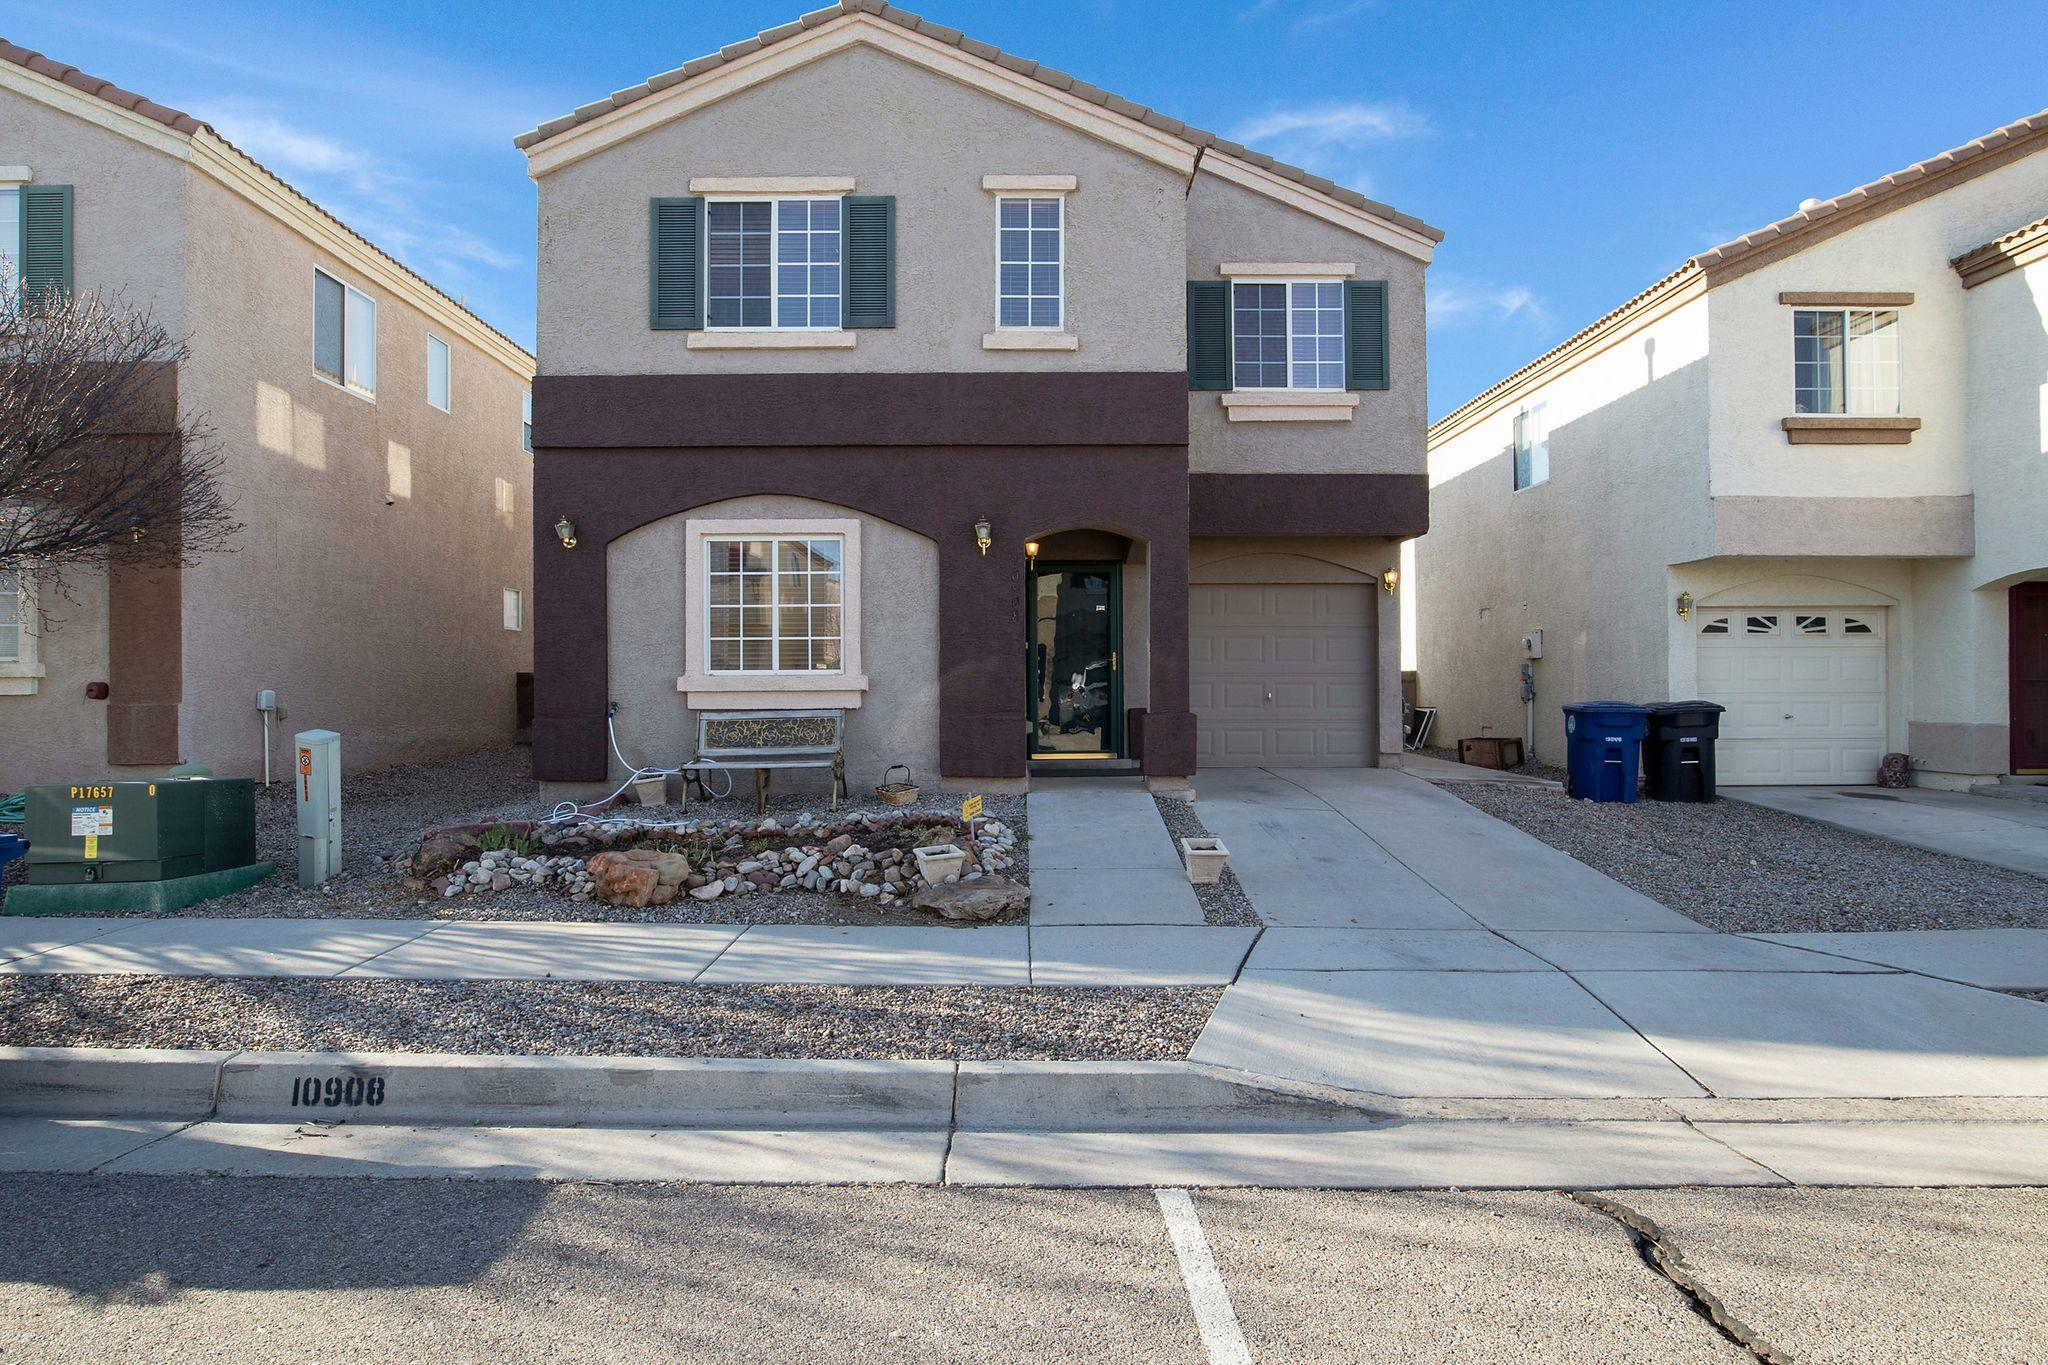 This impeccably maintained house home is located in a gated community minutes away from Kirtland Air Force Base, Sandia Labs, Costco, and Manzano Mesa Park.  The floor plan hard to find features including a downstairs bedroom, three full baths and two living areas.  The open concept kitchen has stainless appliances and a dining nook.  The upstairs primary suite is very large along with a private bath. Other features include a full laundry room, two car garage and easy low maintenance landscaping.